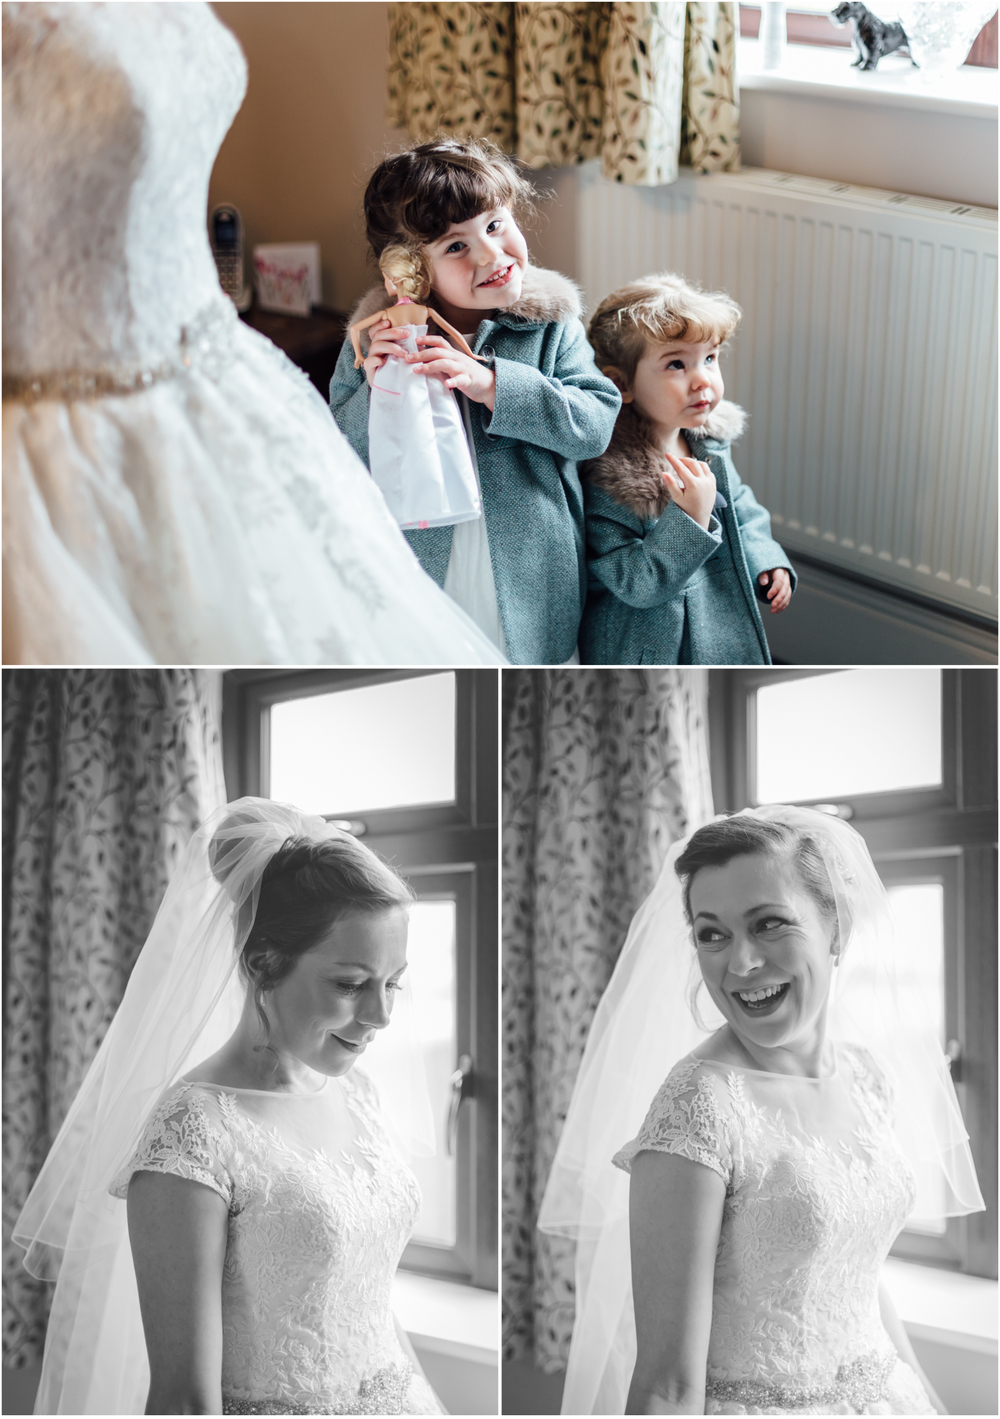 4-Wedding-Photography-Photographer-Derbyshire-Nottinghamshire-Newark-Floral-Media.jpg